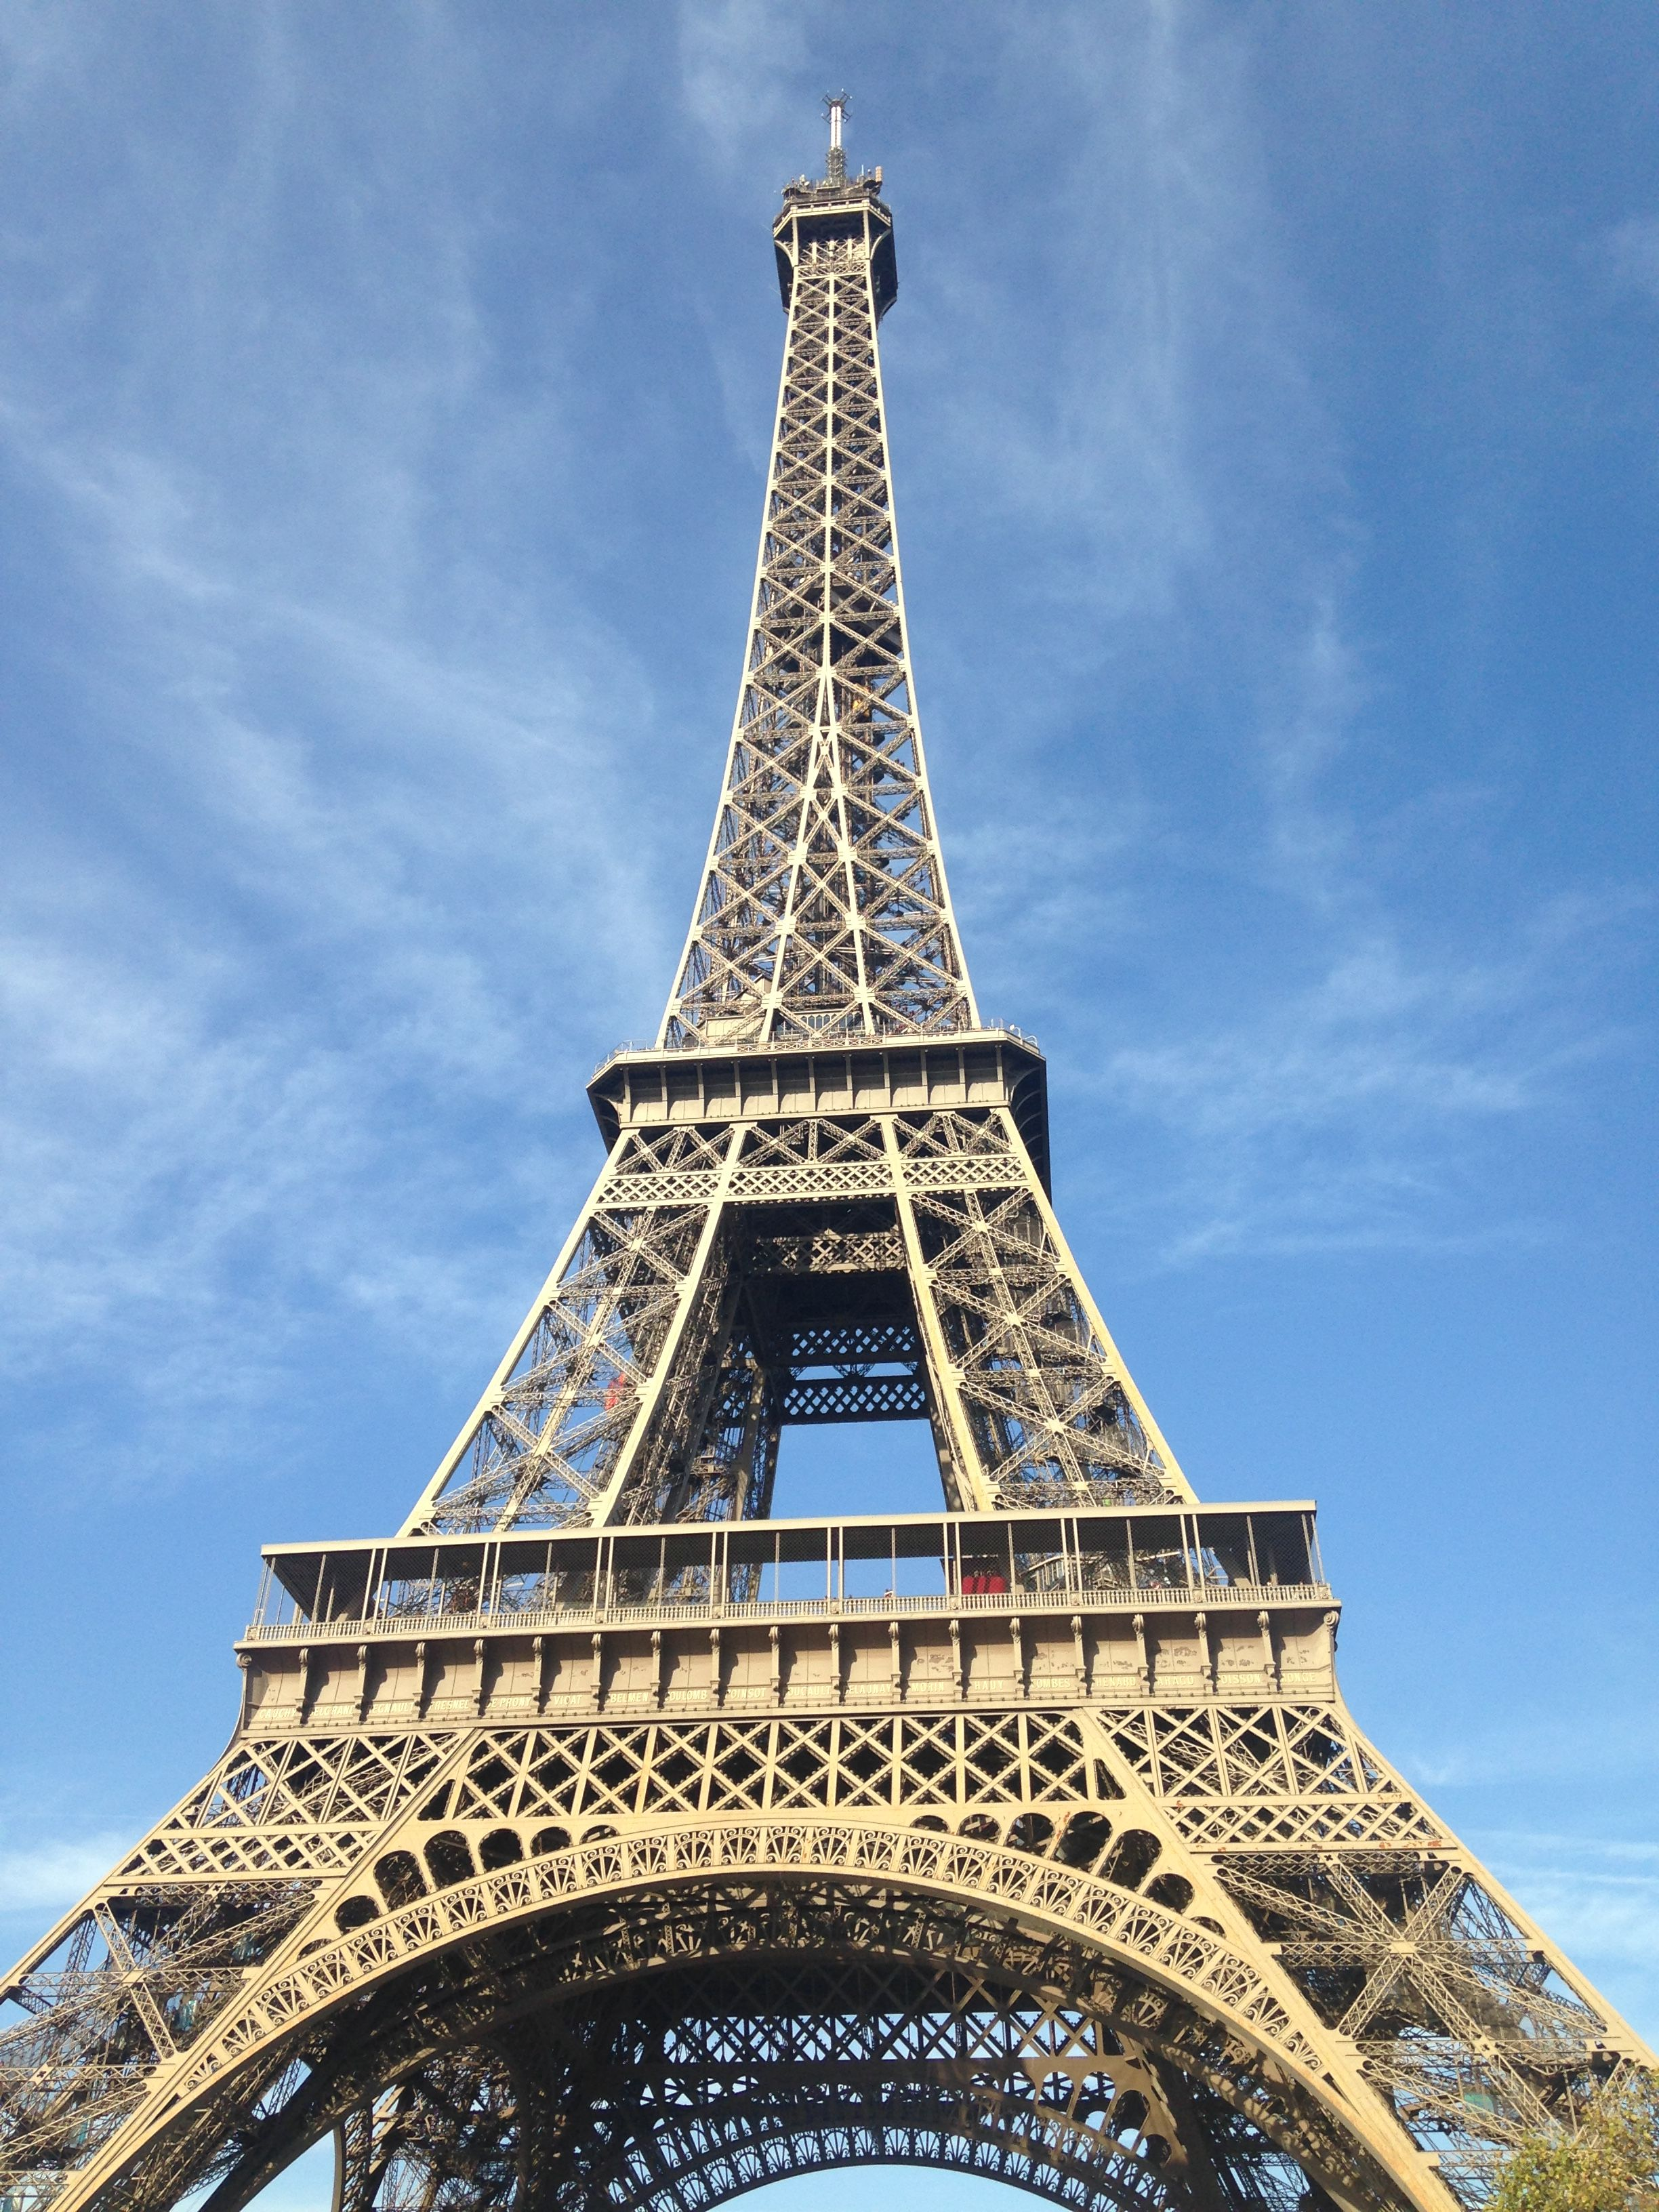 The one and only Eiffel Tower